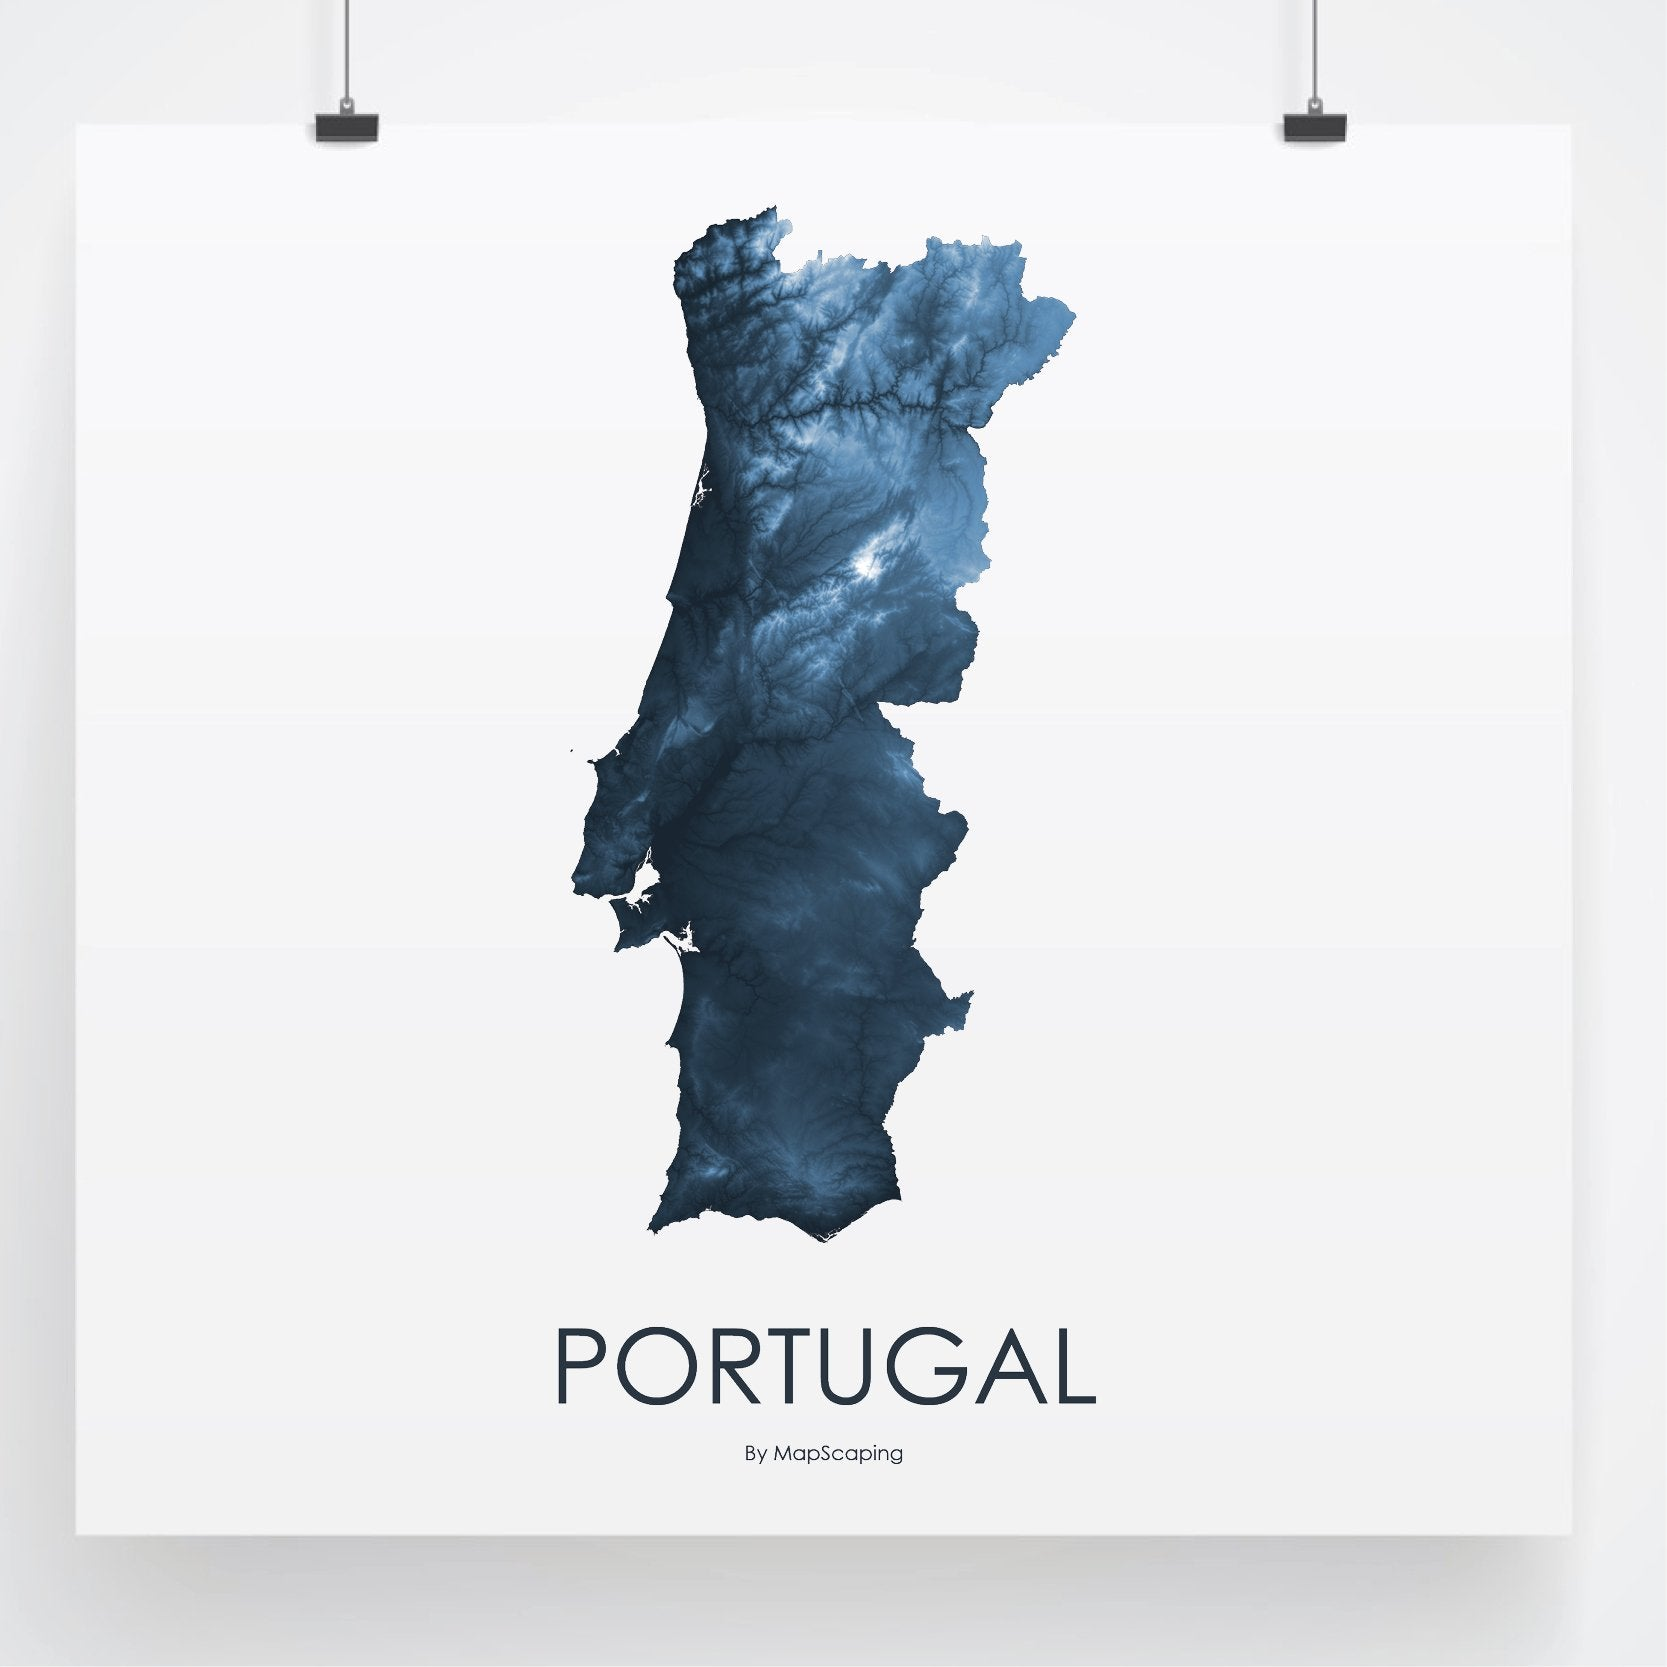 Portugal topographic wall art map - MapScaping.com